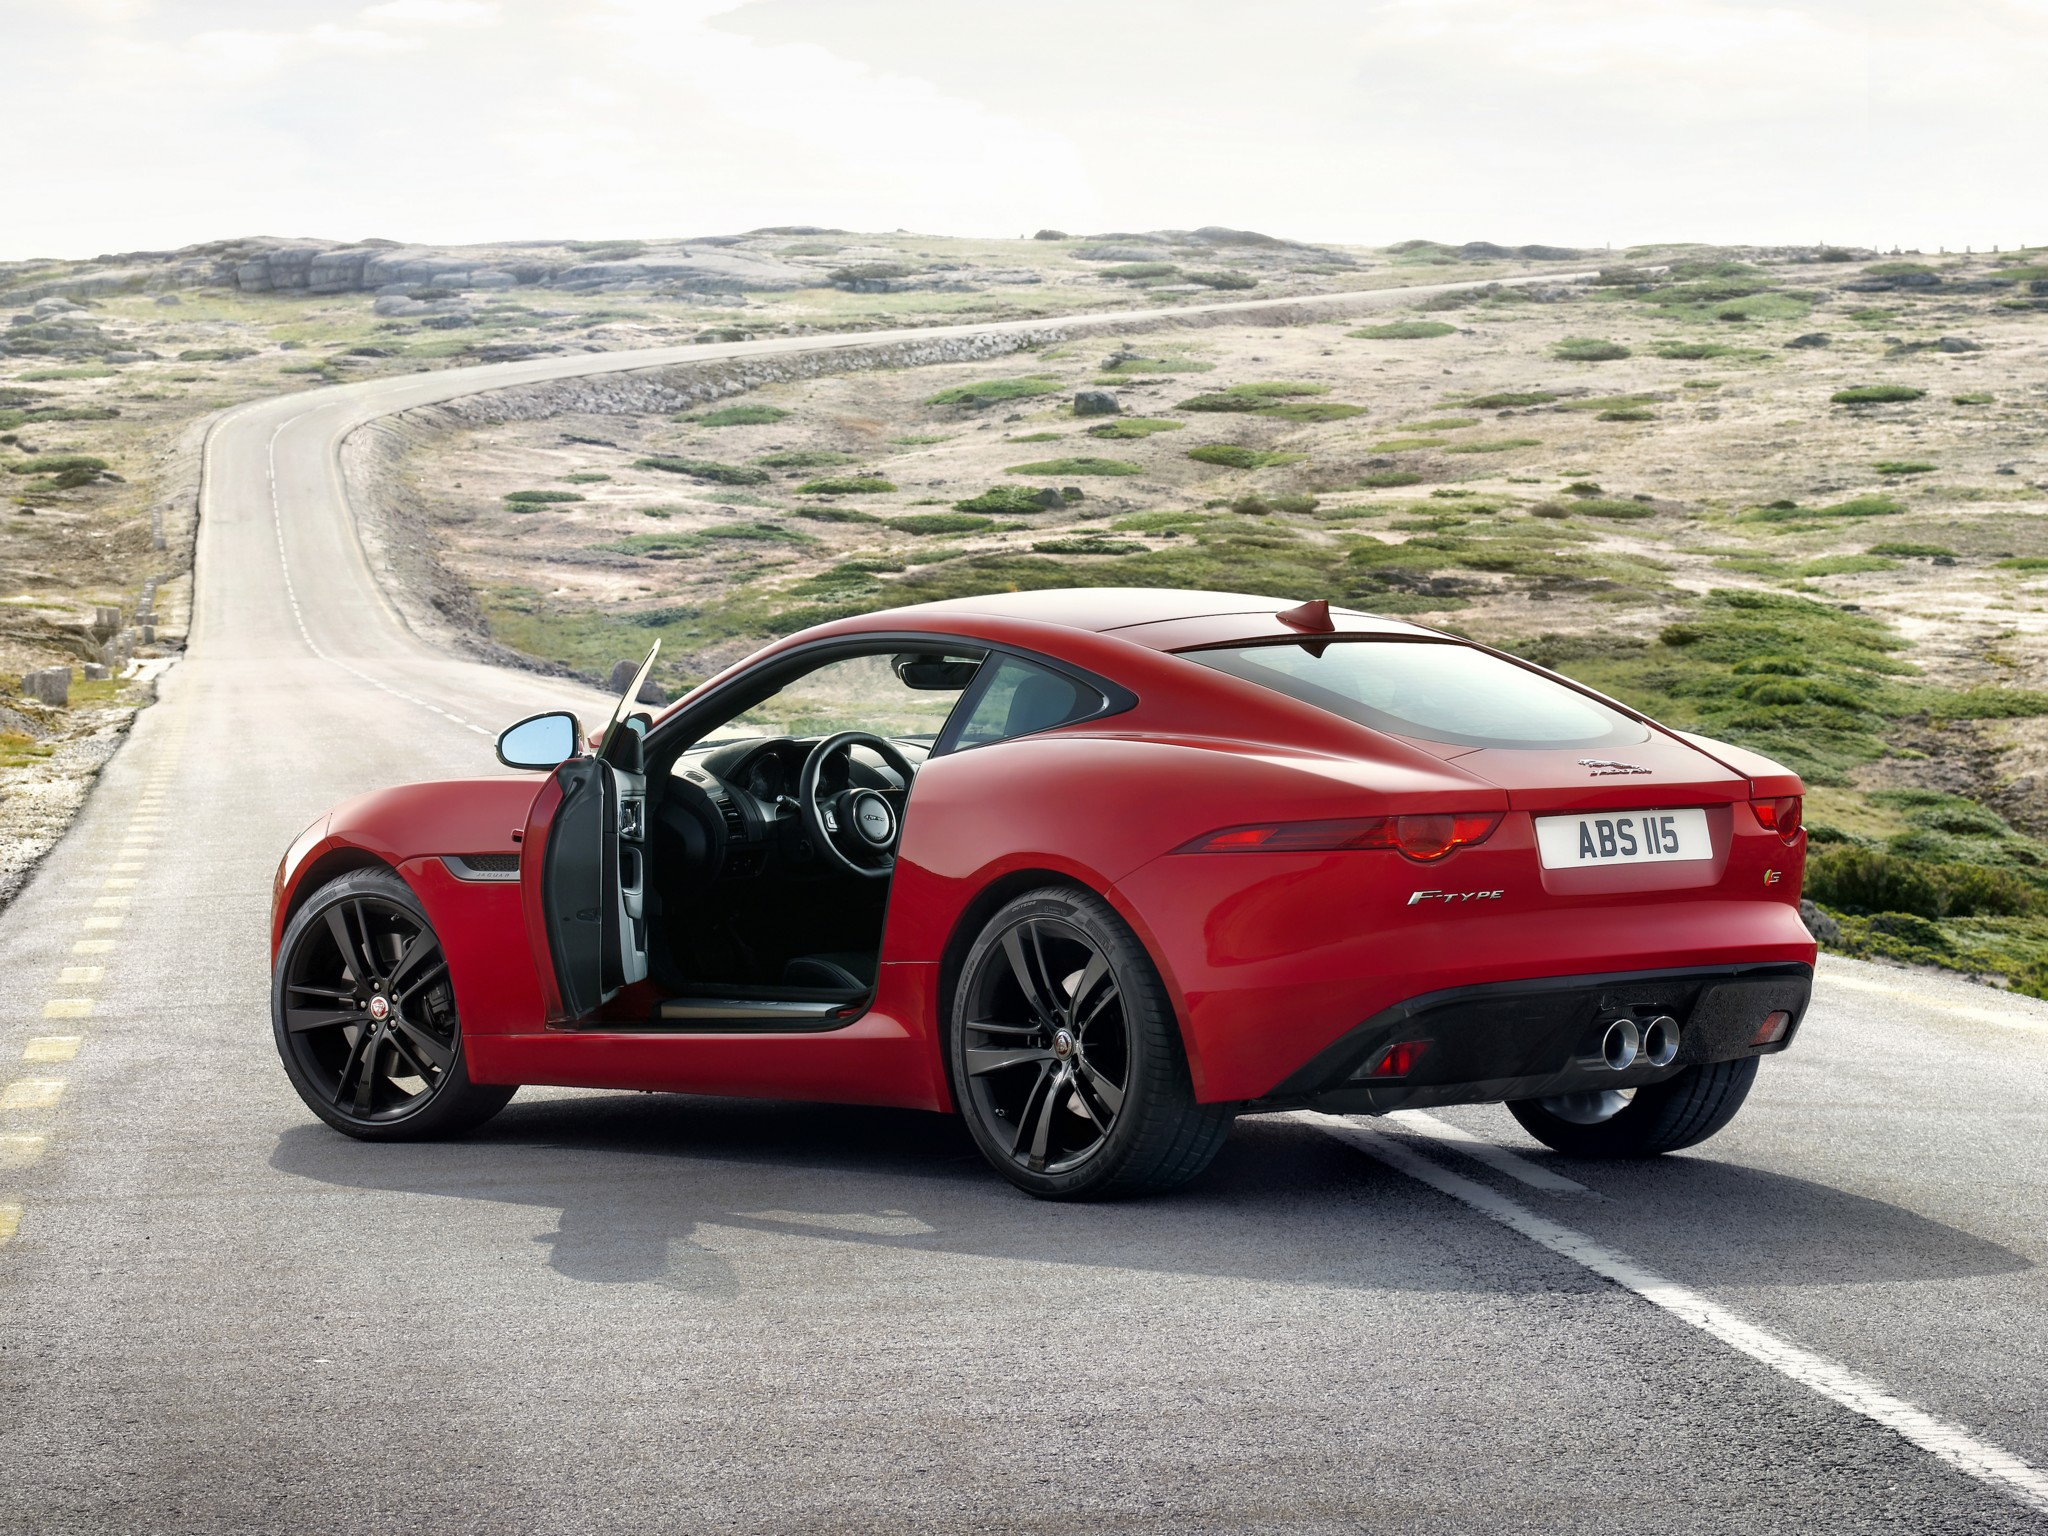 2014 jaguar f type s coupe h wallpaper 2048x1536 178259. Cars Review. Best American Auto & Cars Review